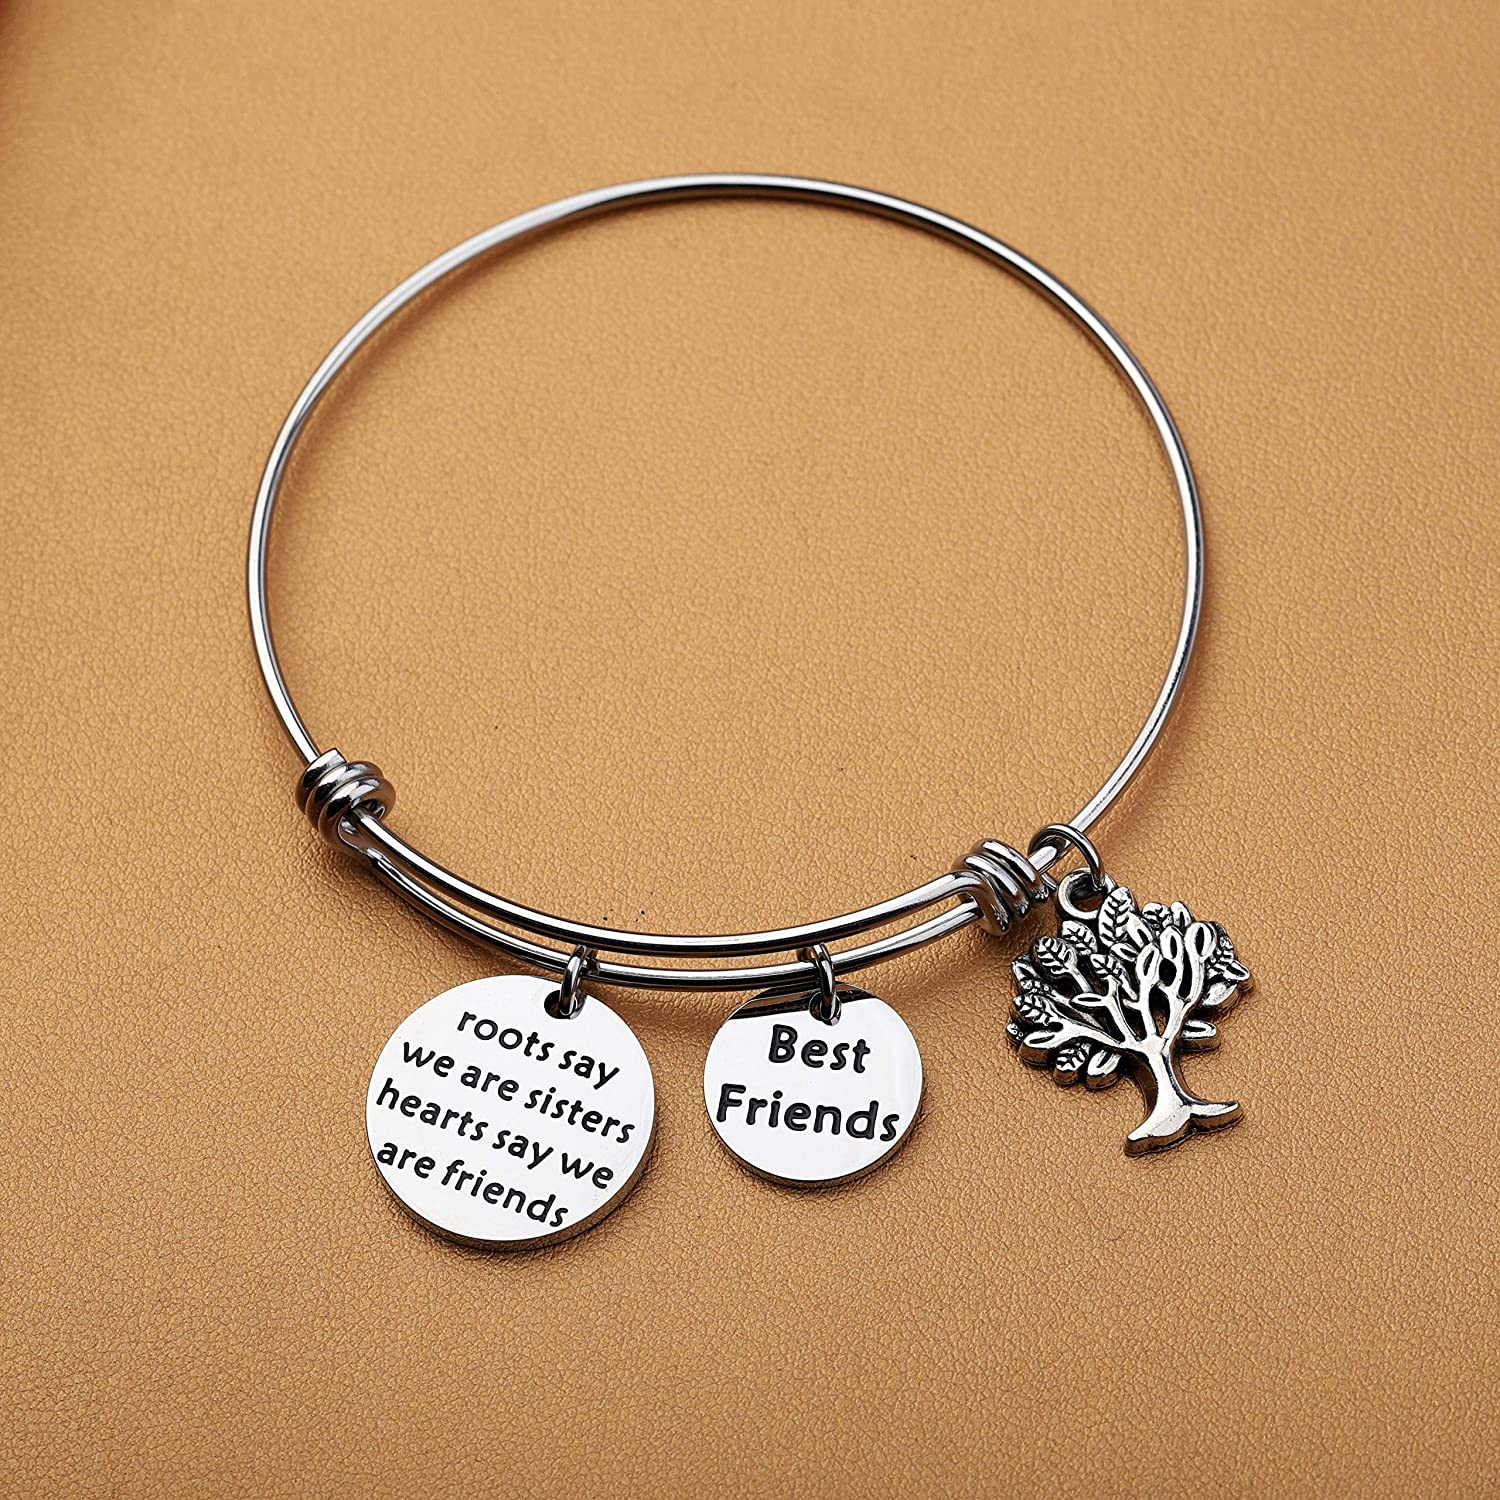 AKTAP Sister Gifts,Sister Bangle Bracelets,Roots Say We are Sisters Hearts Say We are Friends Best Friend Bracelets Friendship Jewelry